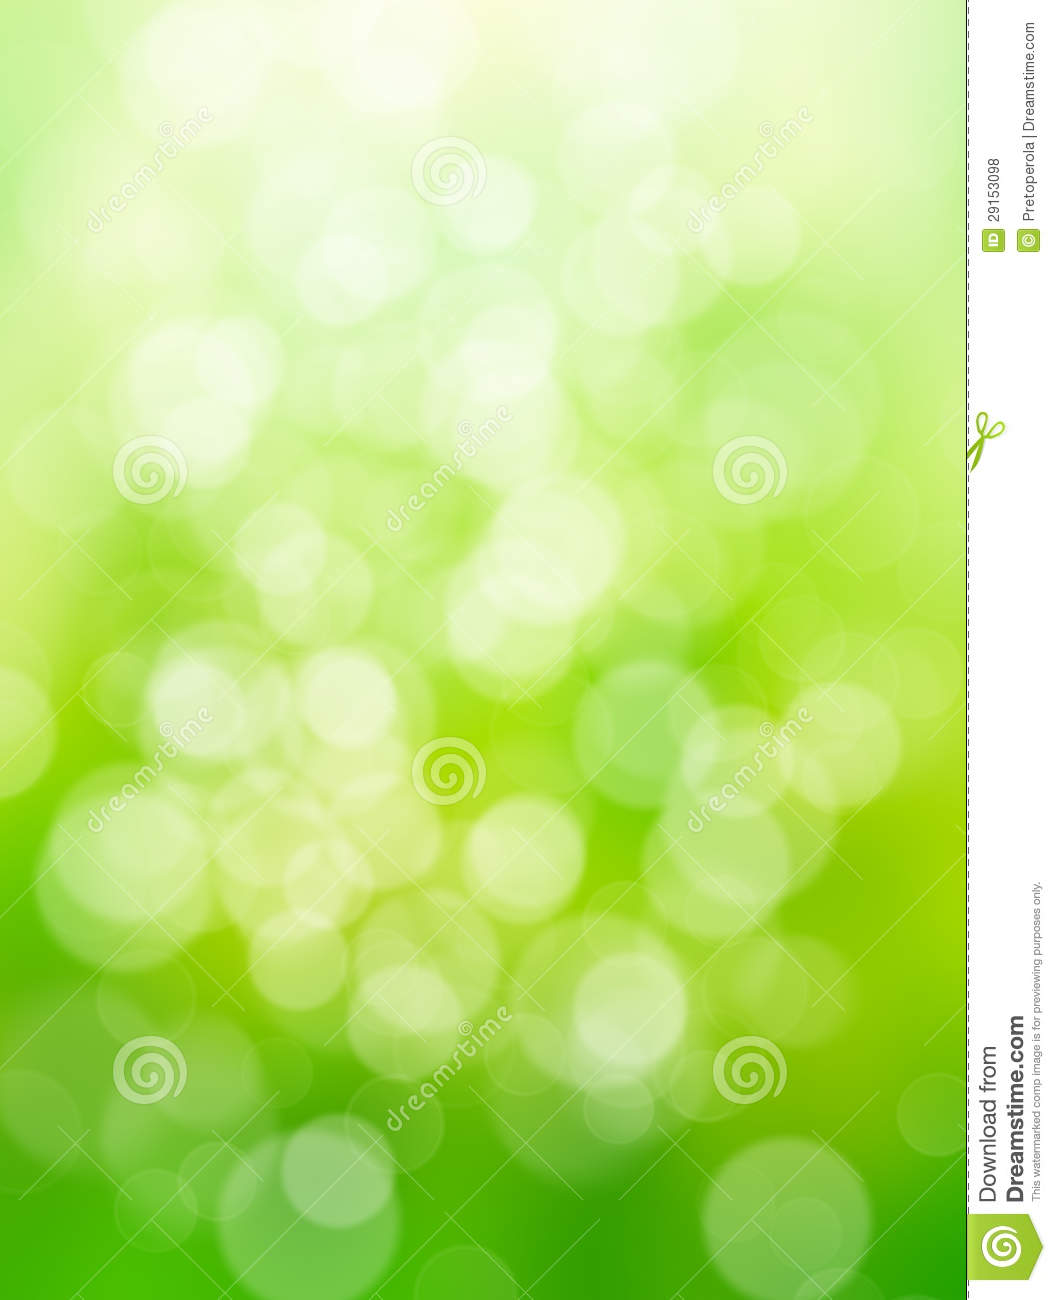 Light Effect Hd Wallpaper Abstract Green Nature Background Stock Illustration